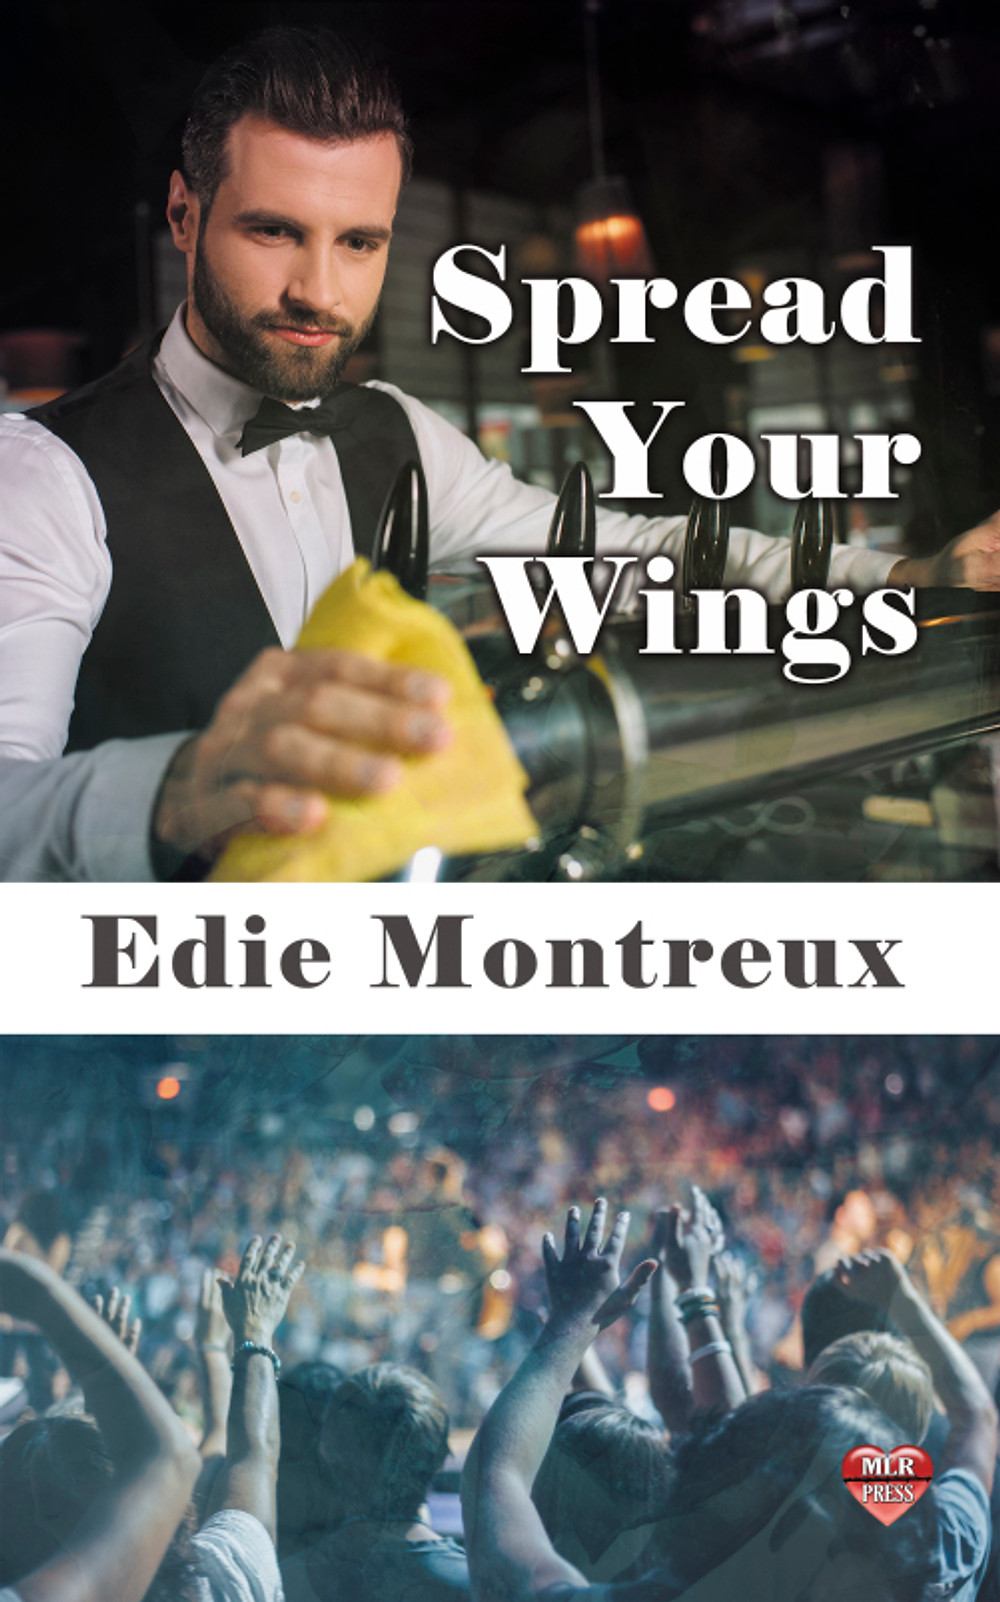 Spread Your Wings by MP